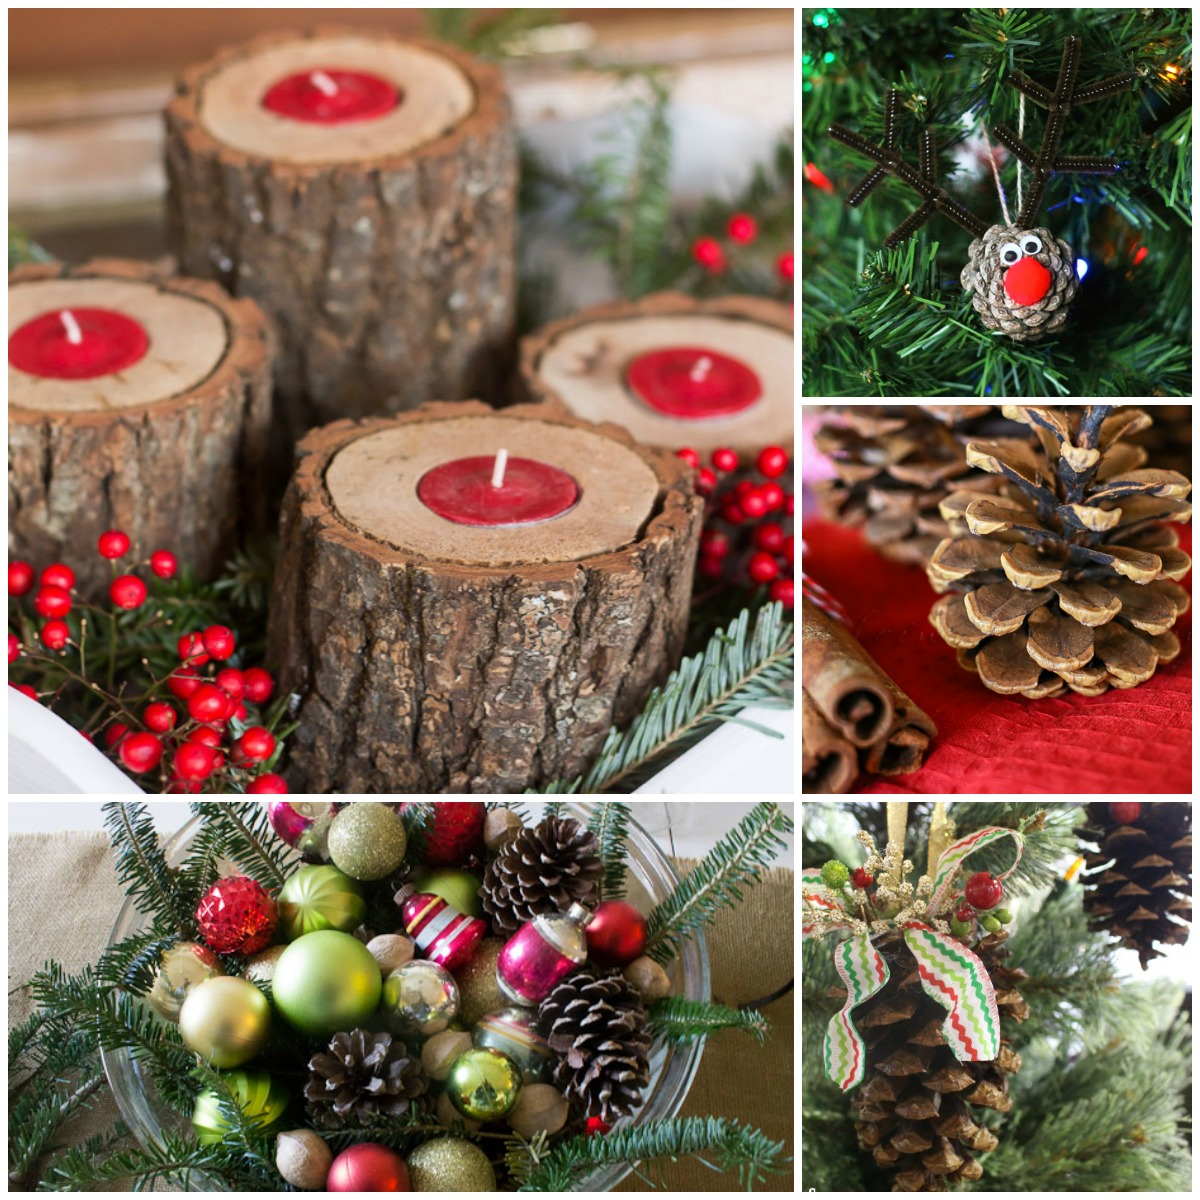 wait free christmas decorations yes please love these ideas for free natural - Christmas Decorating On A Dime